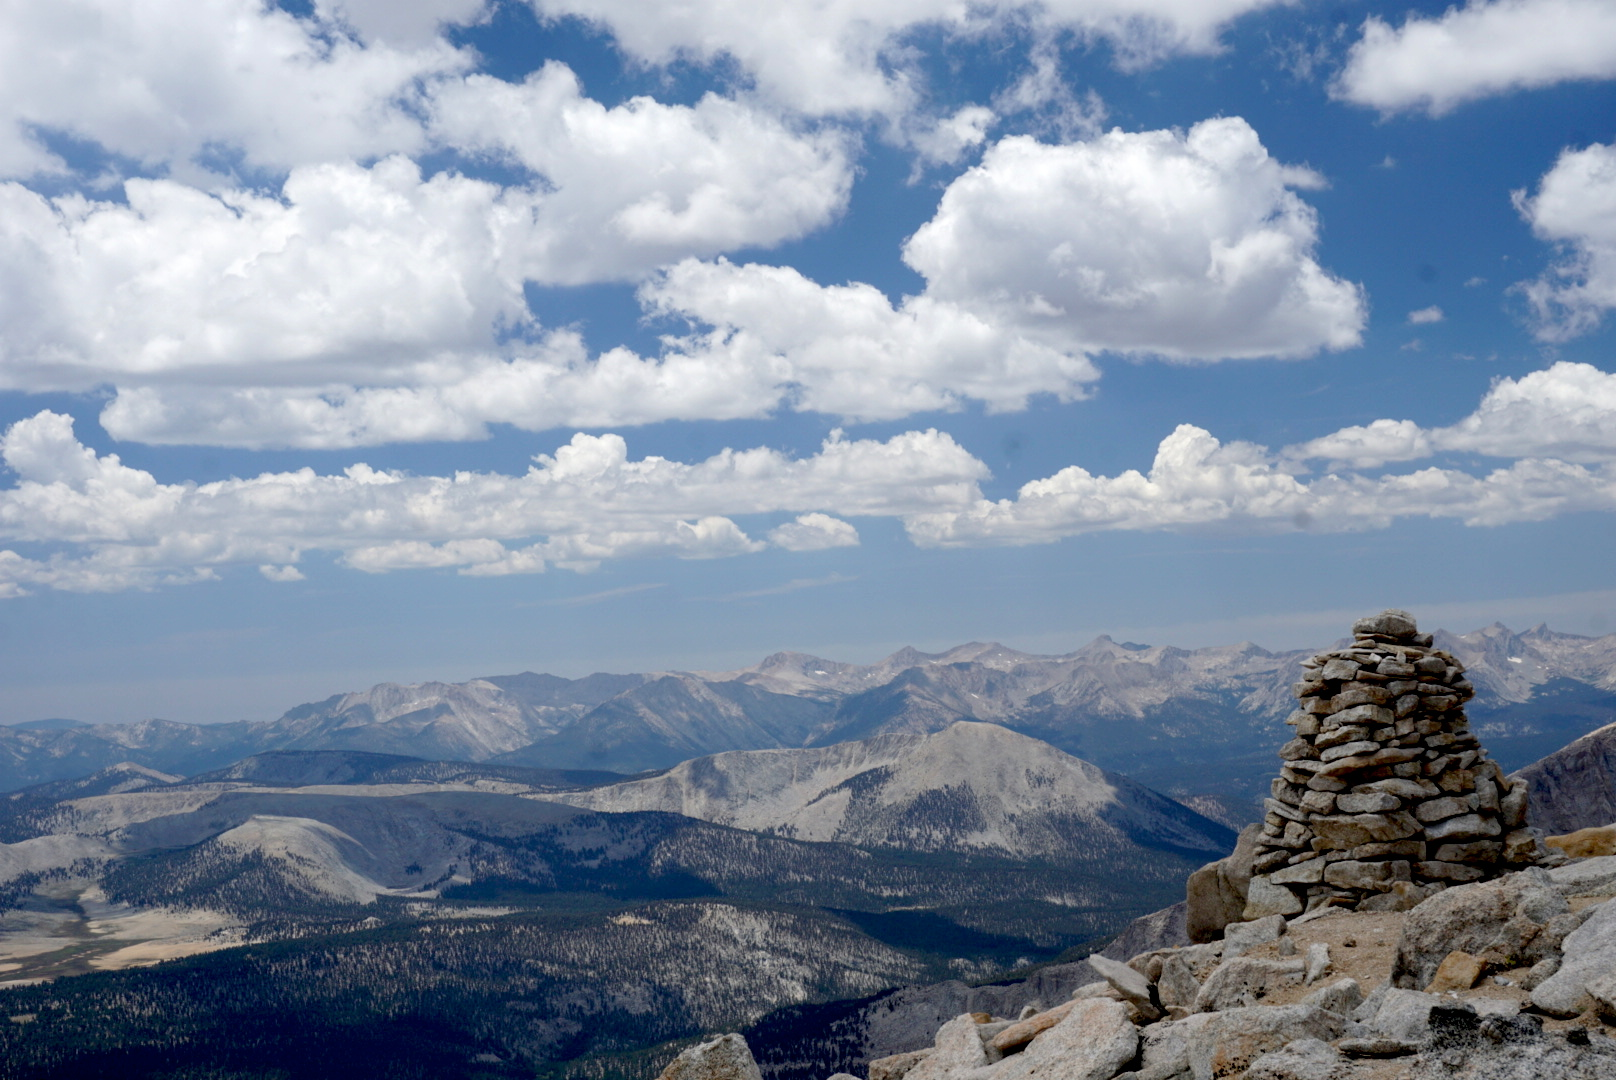 On the trail to Mt. Langley, an impressively-constructed wayfinding cairn and the breathtaking view into Sequoia National Park.